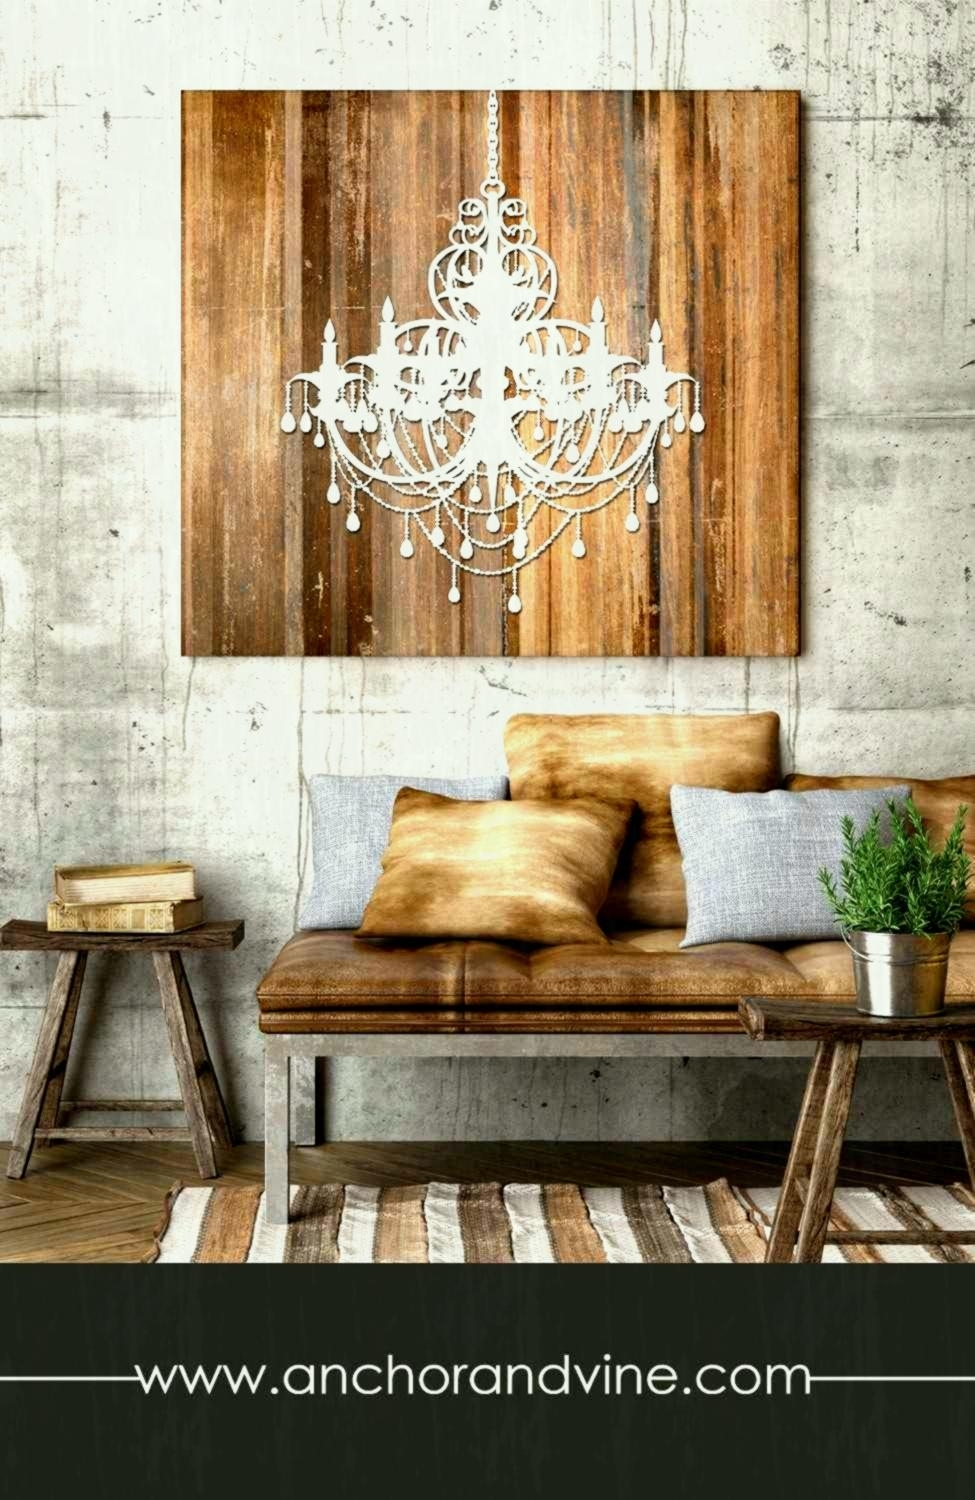 Large Chandelier Wall Art Unique Canvas Oversized Decor Of For Most Current Chandelier Wall Art (View 15 of 20)